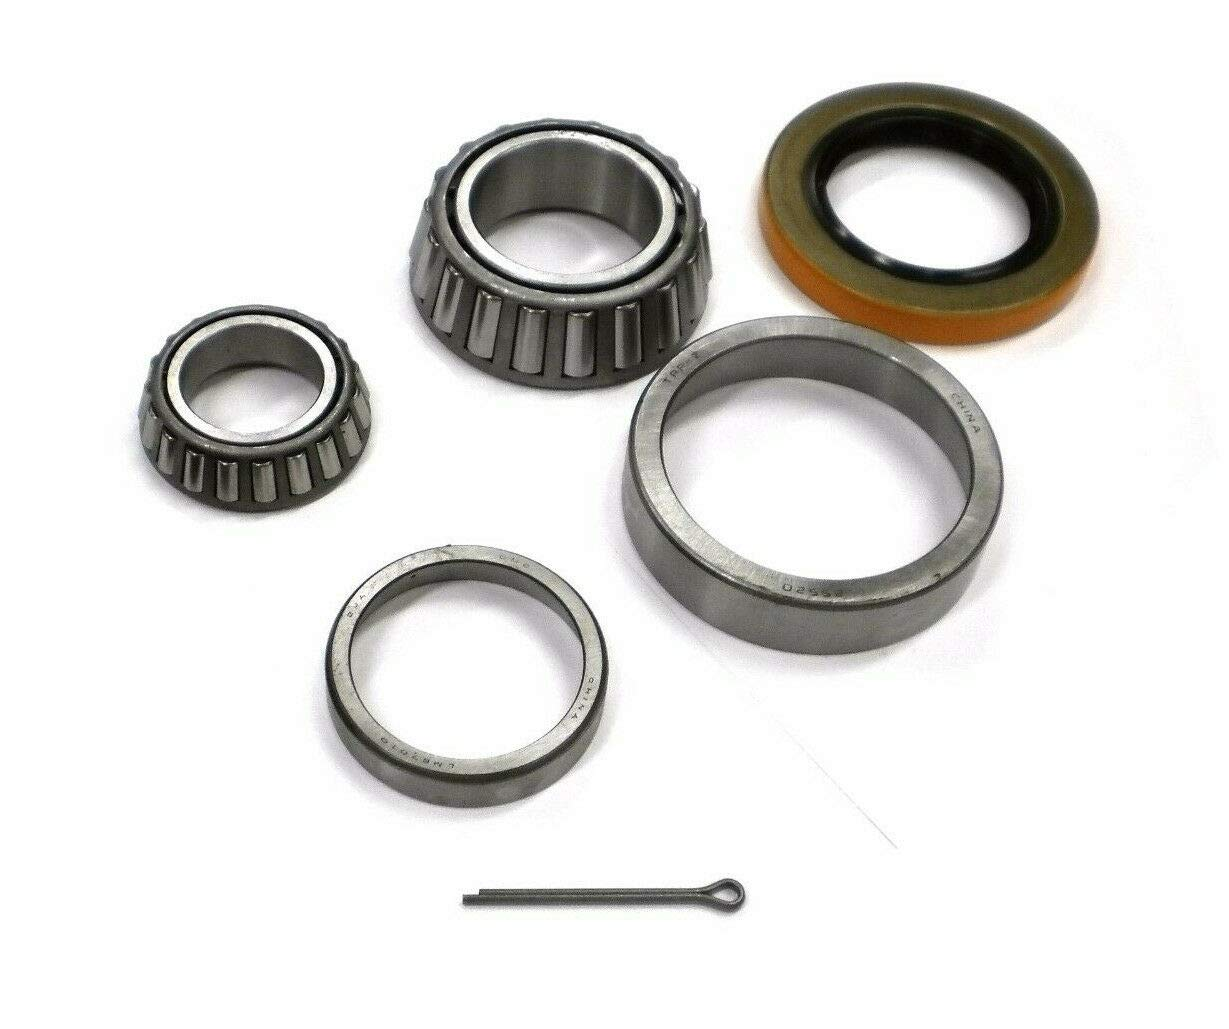 5200# Bearing Axle Kit LM67048 1.25'' Bearing Trailer Vintage Dexter Drum 8-155 by unbrand